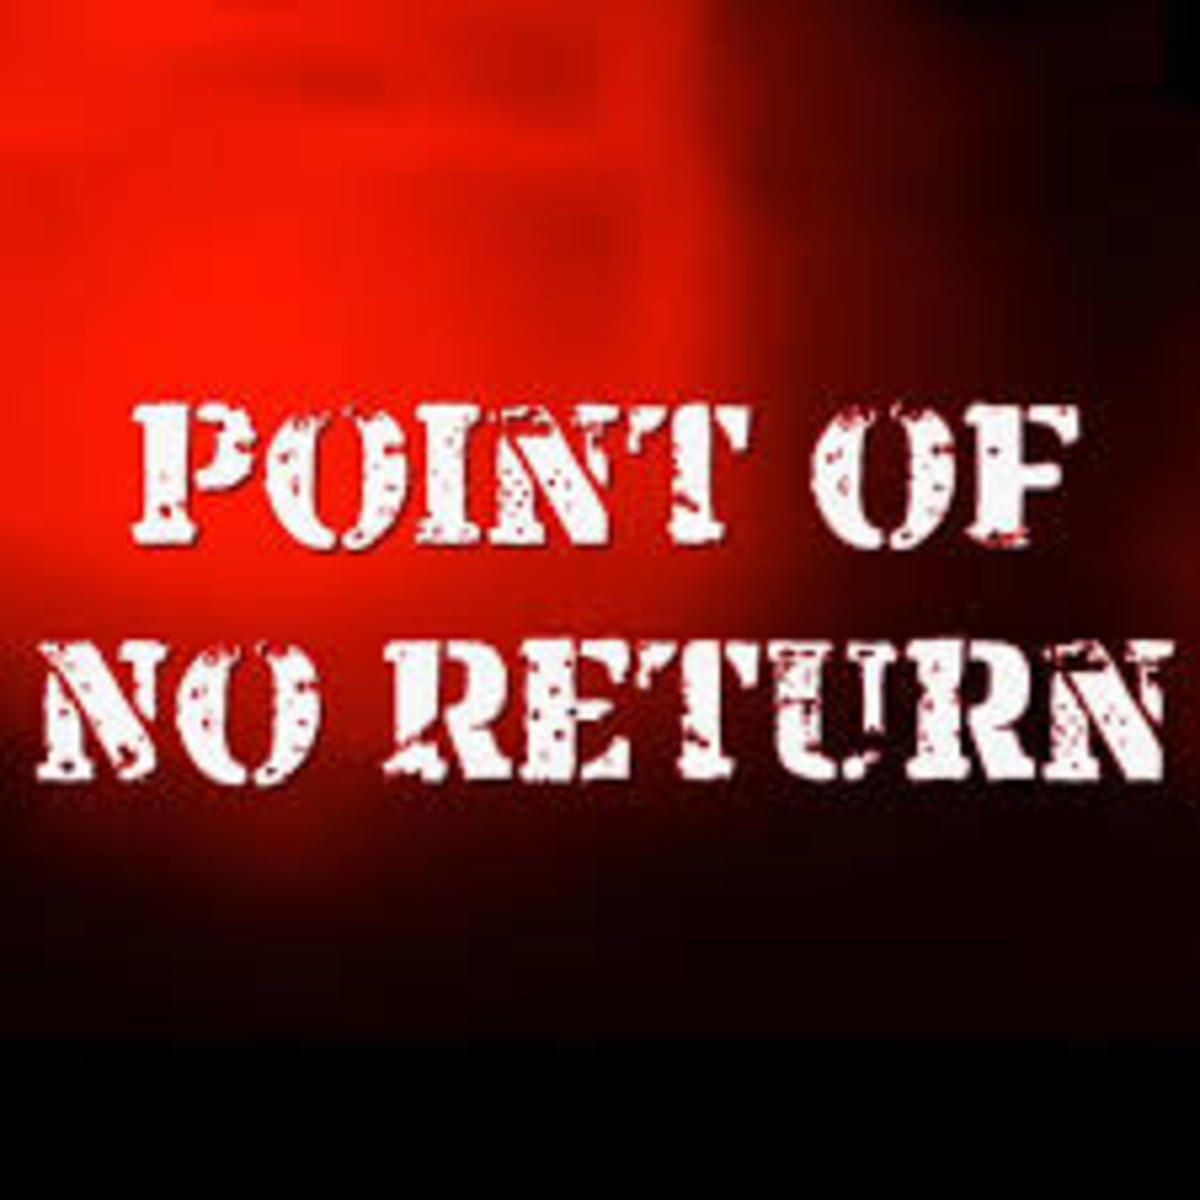 This is the point of no return, therefore nobody can ever return beyond this point.